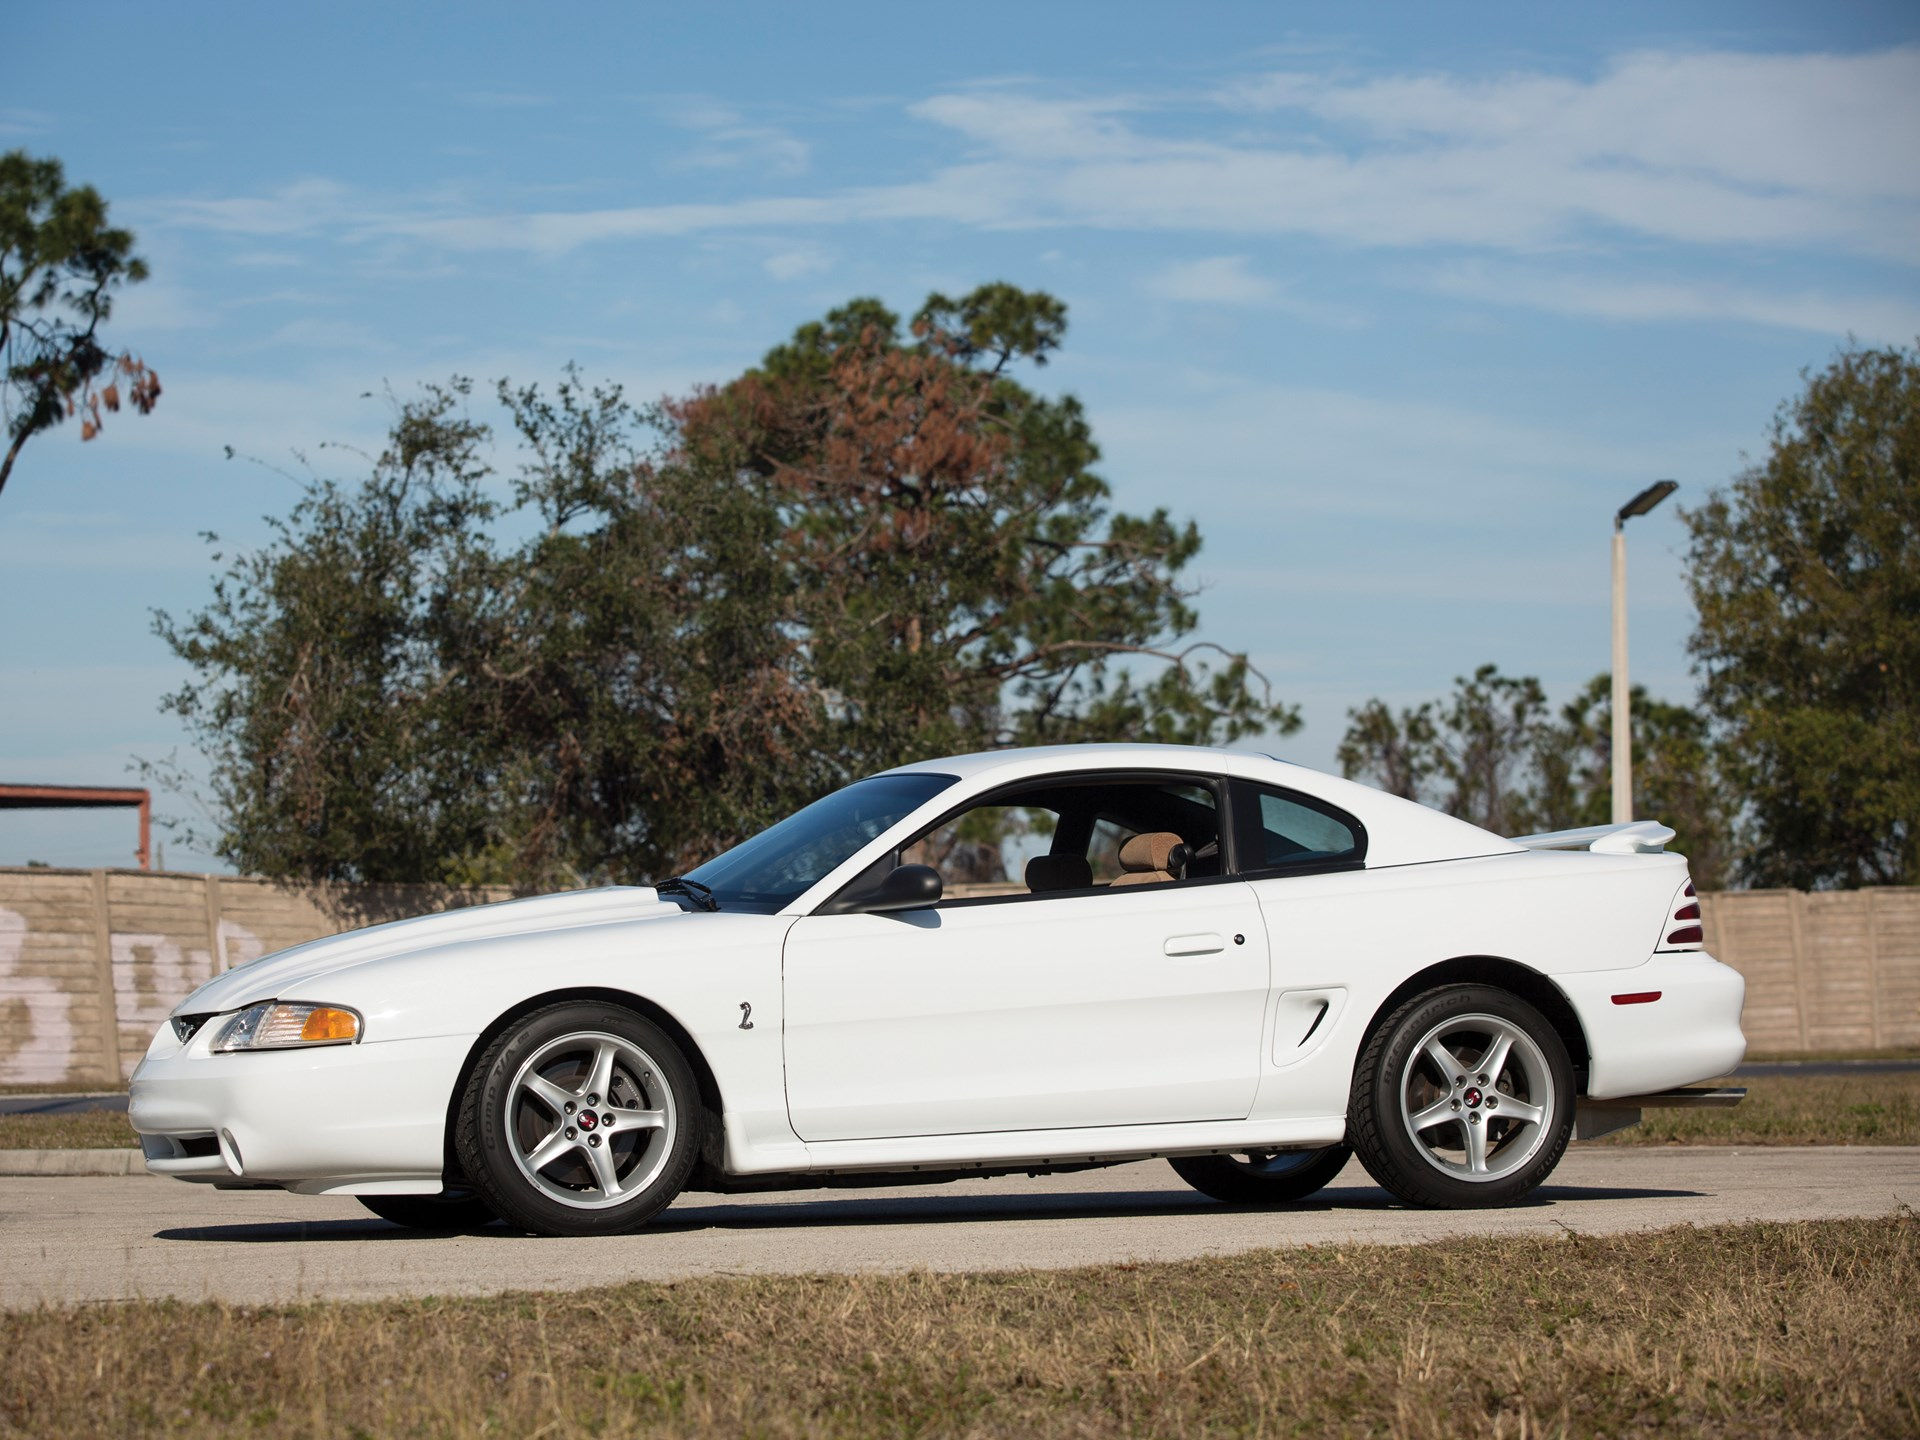 1995 Ford Mustang SVT Cobra R side profile